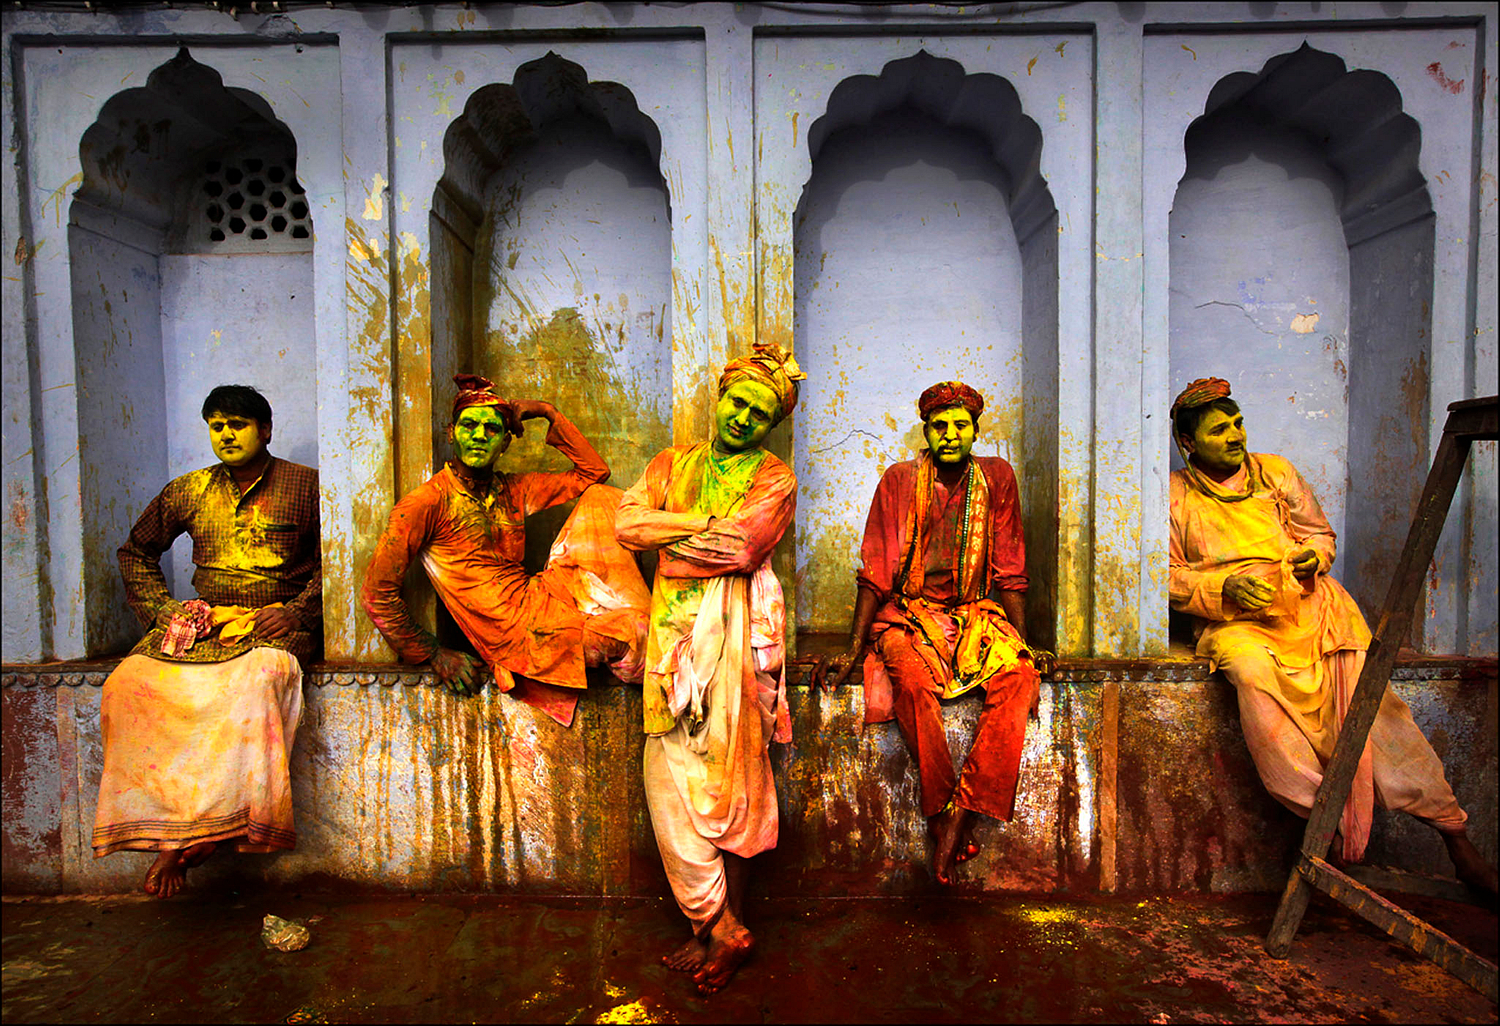 Indian villagers from Nandgaon wait for the arrival of villagers from Barsana to play Lathmar Holi at the Nandagram temple famous for Lord Krishna and his brother Balram, in Nandgaon 120 kilometers ( 75 miles)  from New Delhi, India , Friday, March 22, 2013. During Lathmar Holi the women of Nandgaon, the hometown of Krishna, beat the men from Barsana , the legendary hometown of Radha, consort of Hindu God Krishna , with wooden sticks in response to their teasing as they depart the town. (AP Photo / Manish Swarup)